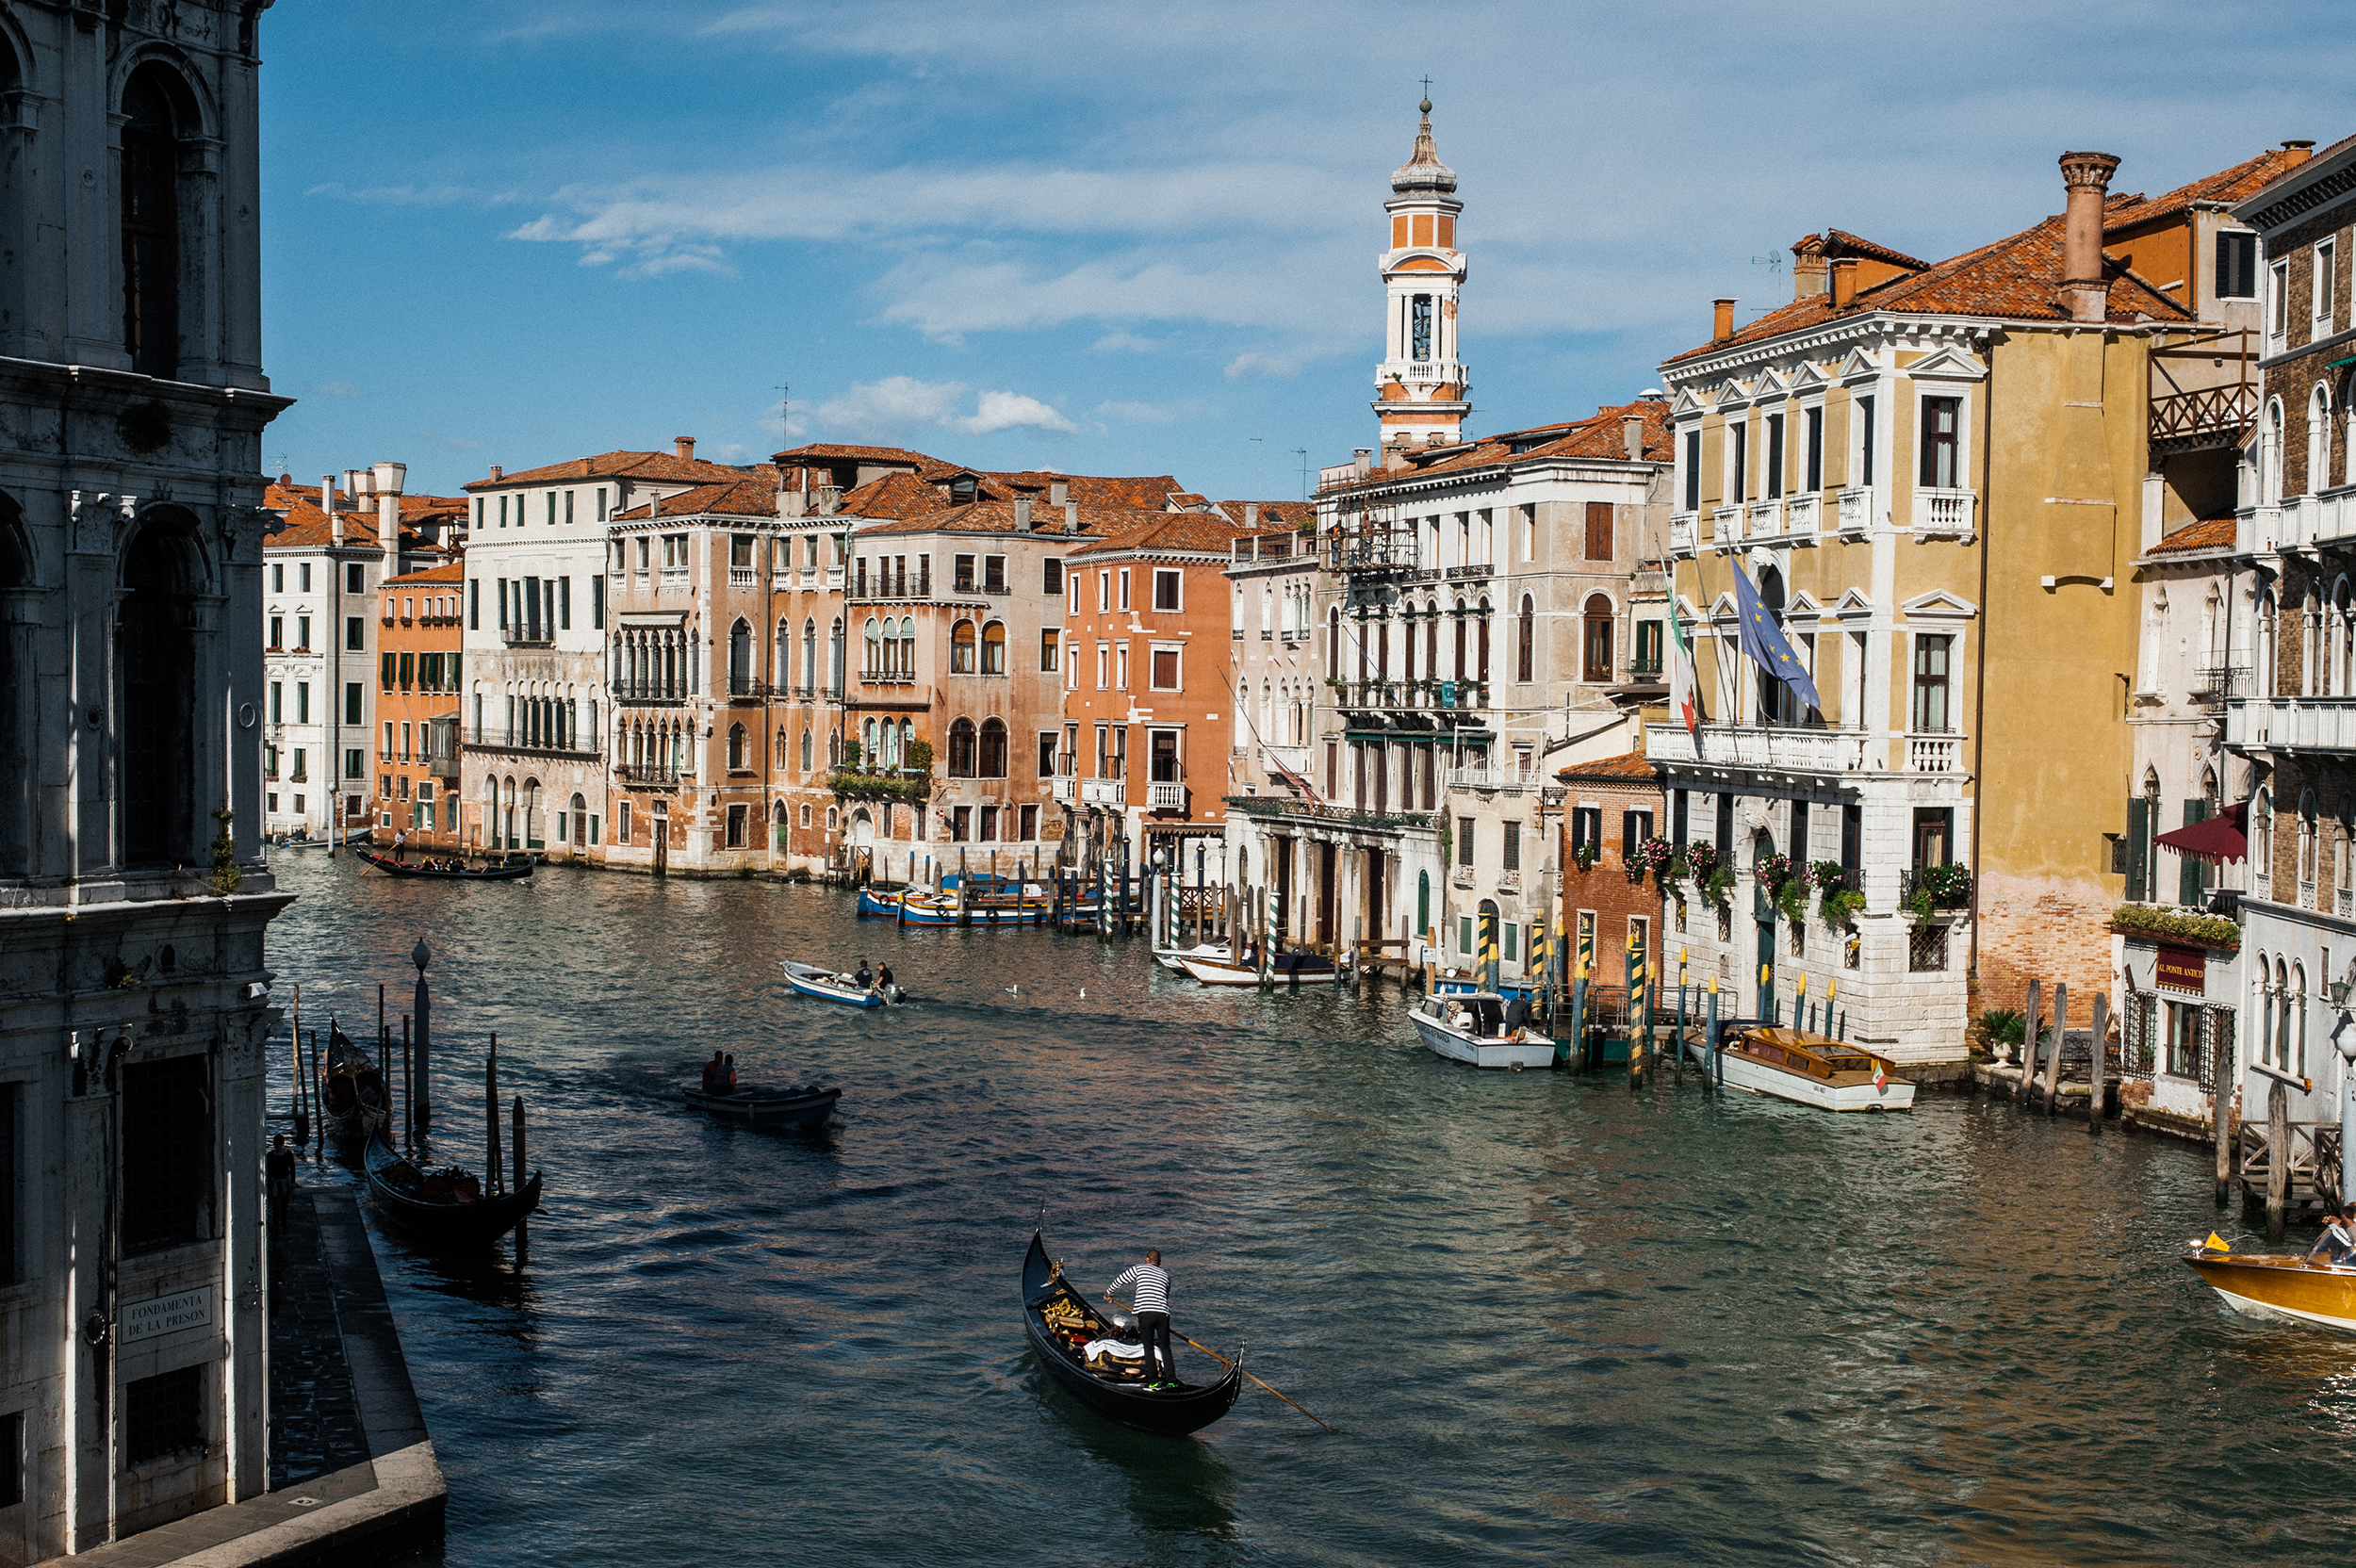 KC_Lifestyle_Photographer_OutdoorPhotography_Adventure_Photography_Venice_Italy20.jpg